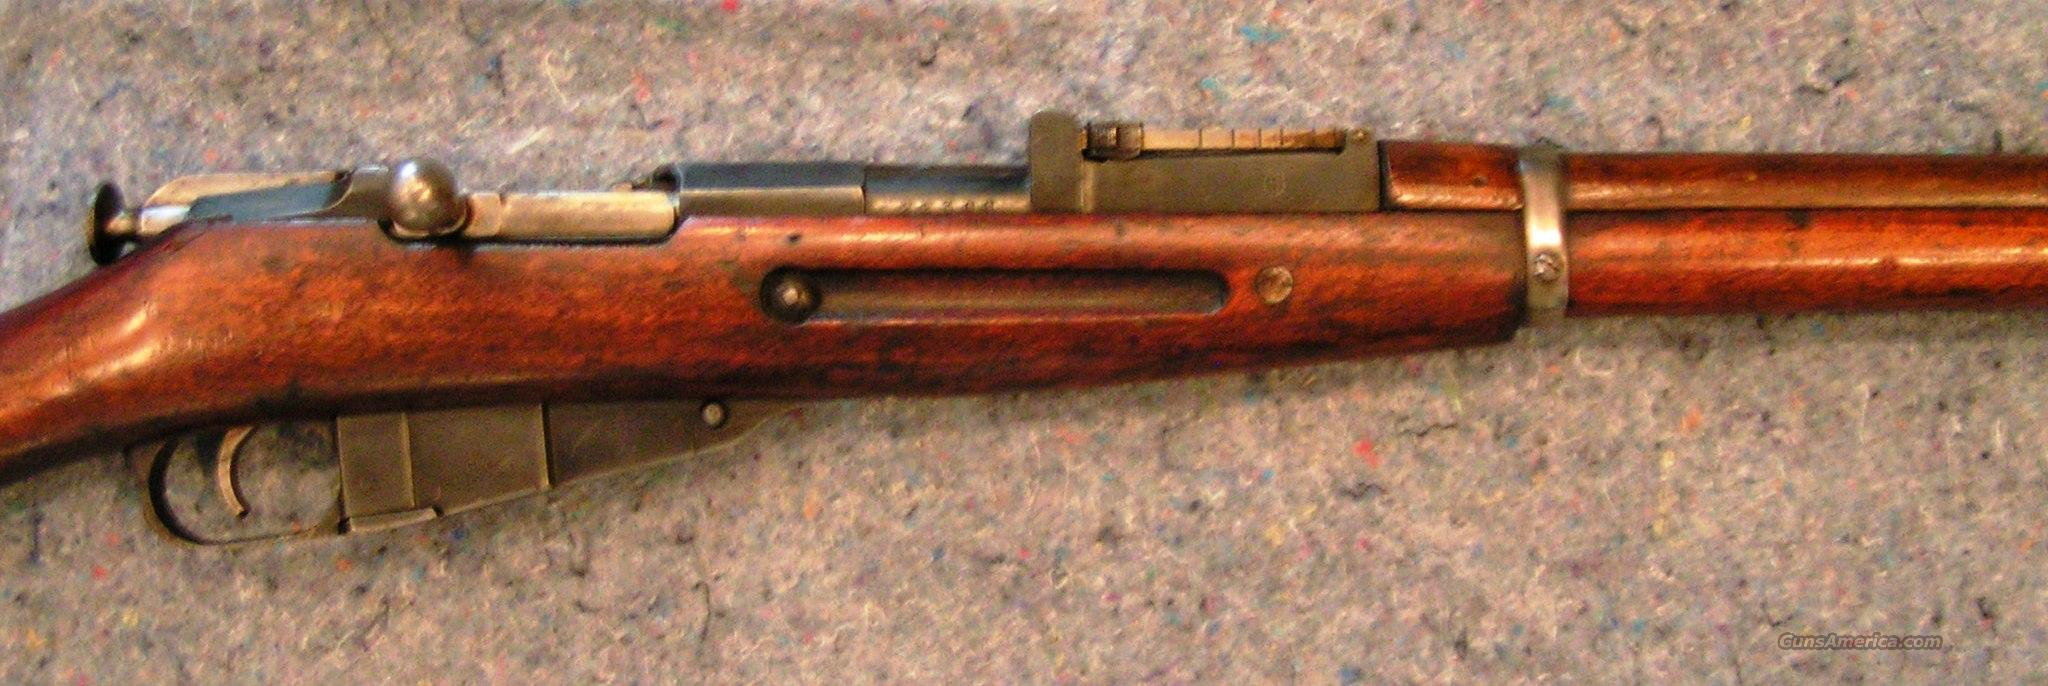 "Mosign Nagant ""SKY"" Finnish, complete ""as issued"" rifle!  Guns > Rifles > Mosin-Nagant Rifles/Carbines"